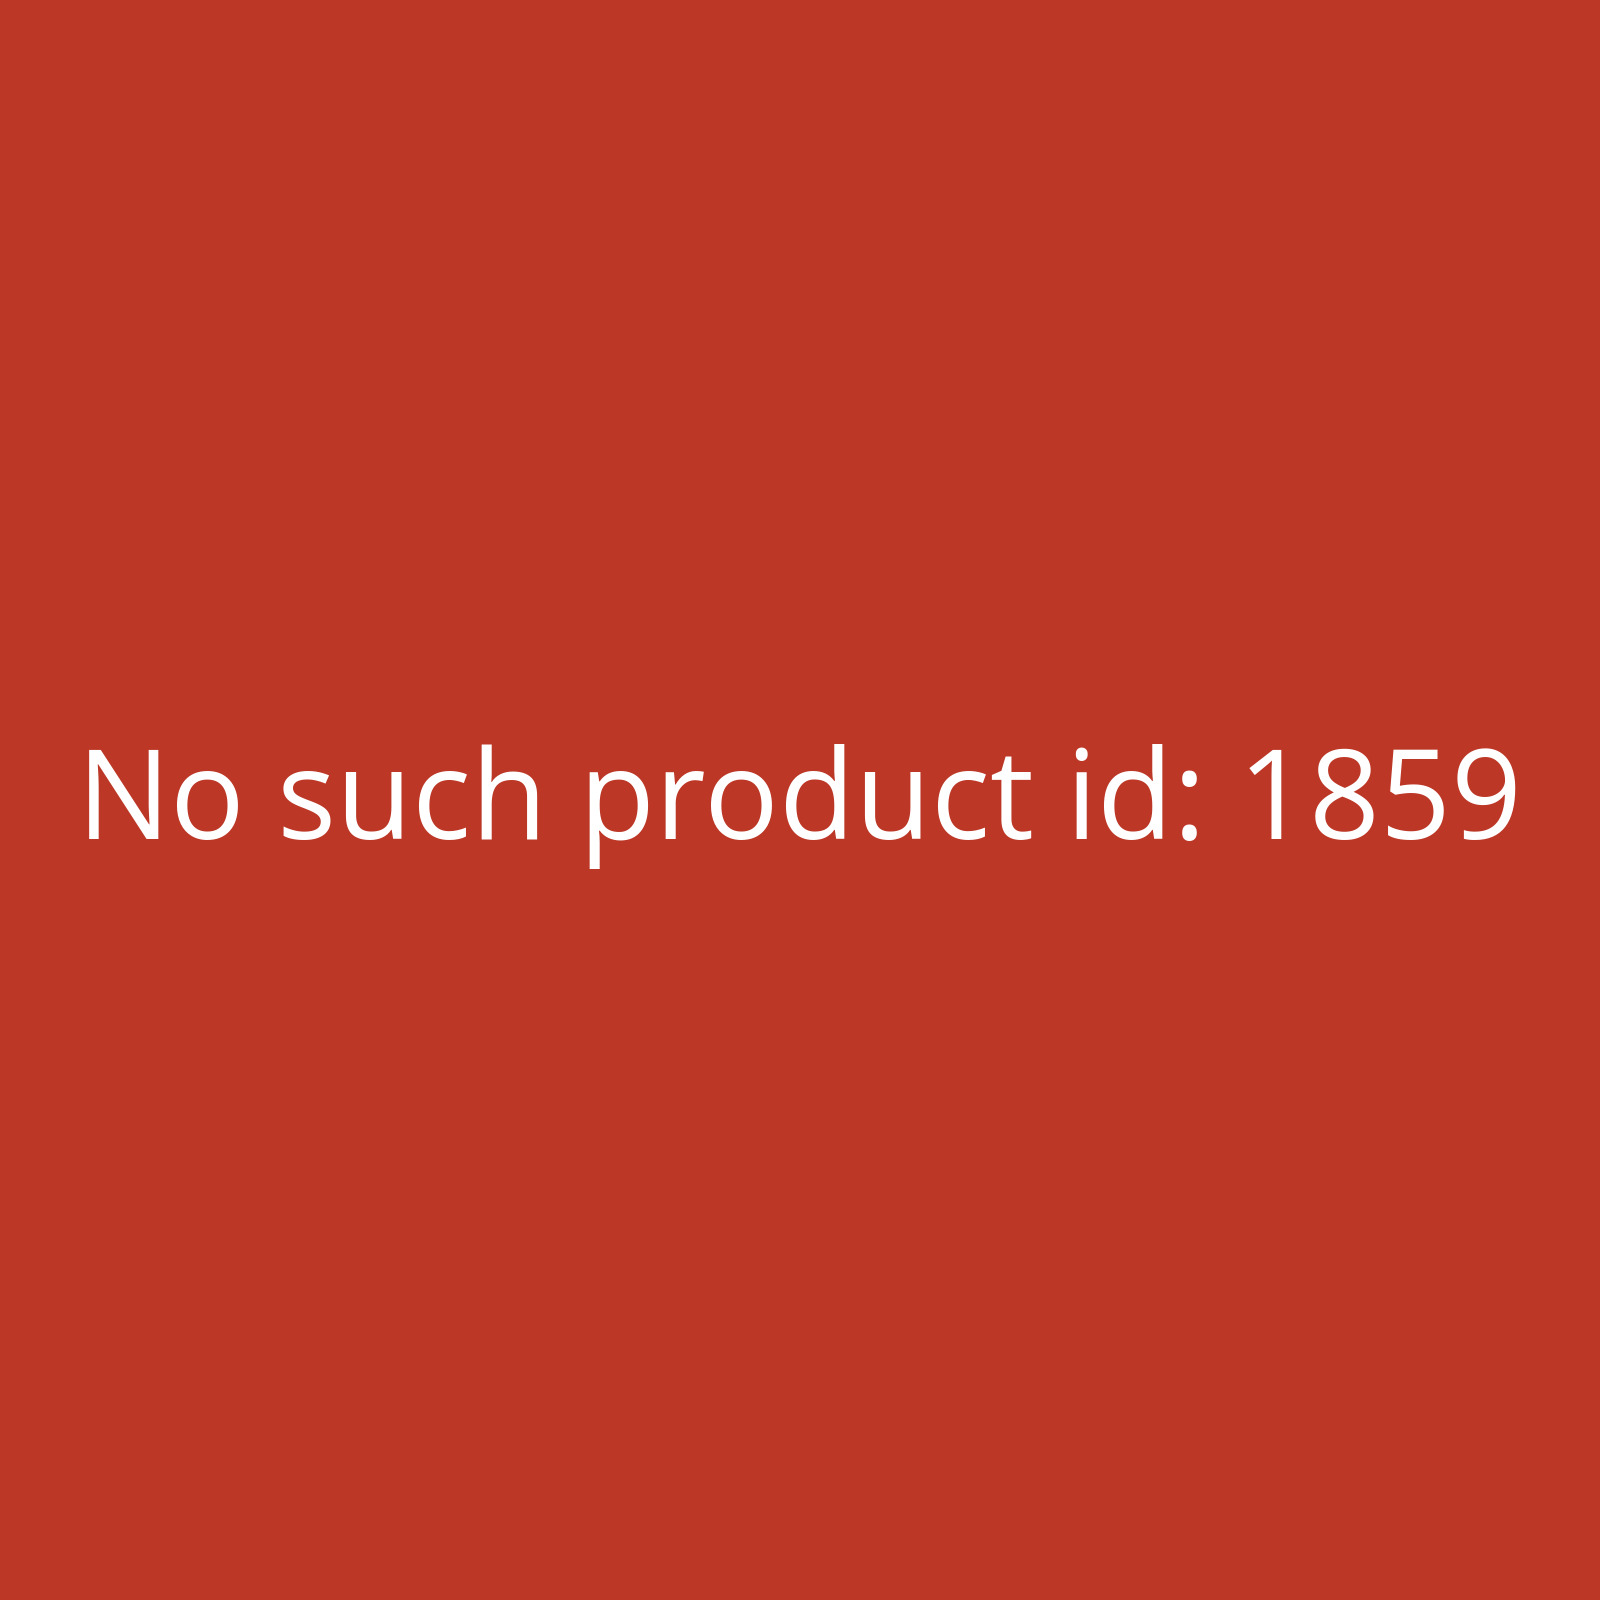 H.O.C.K. Pinamar Outdoor Kissen 50x50cm orange 101 sun